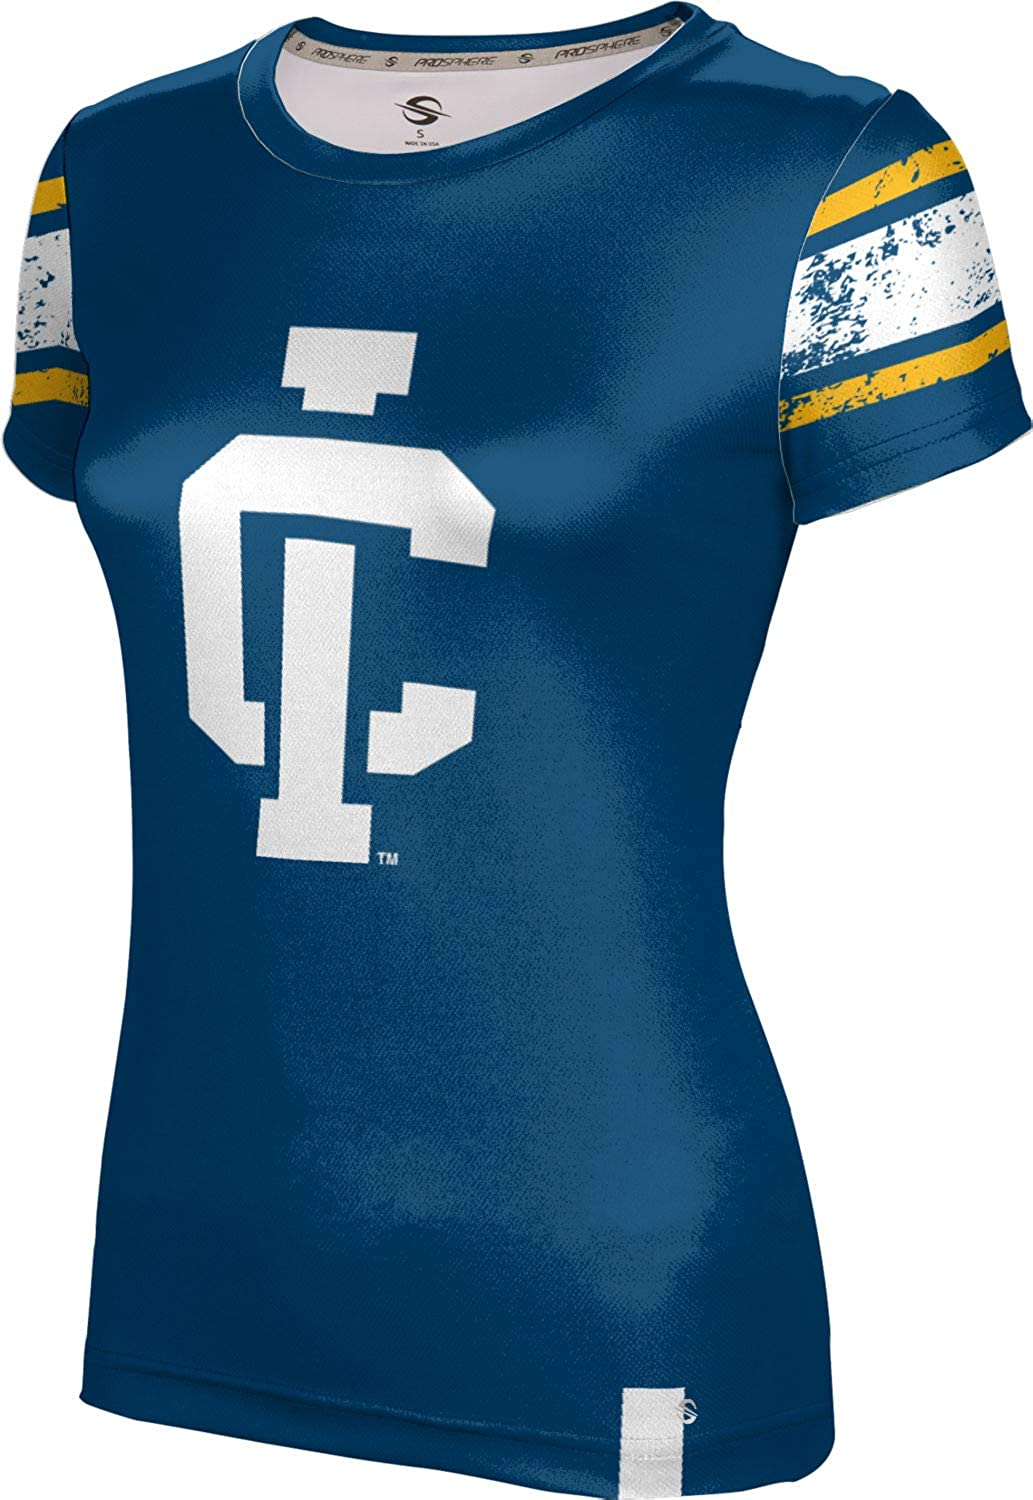 ProSphere Ithaca College Girls' Performance T-Shirt (End Zone)